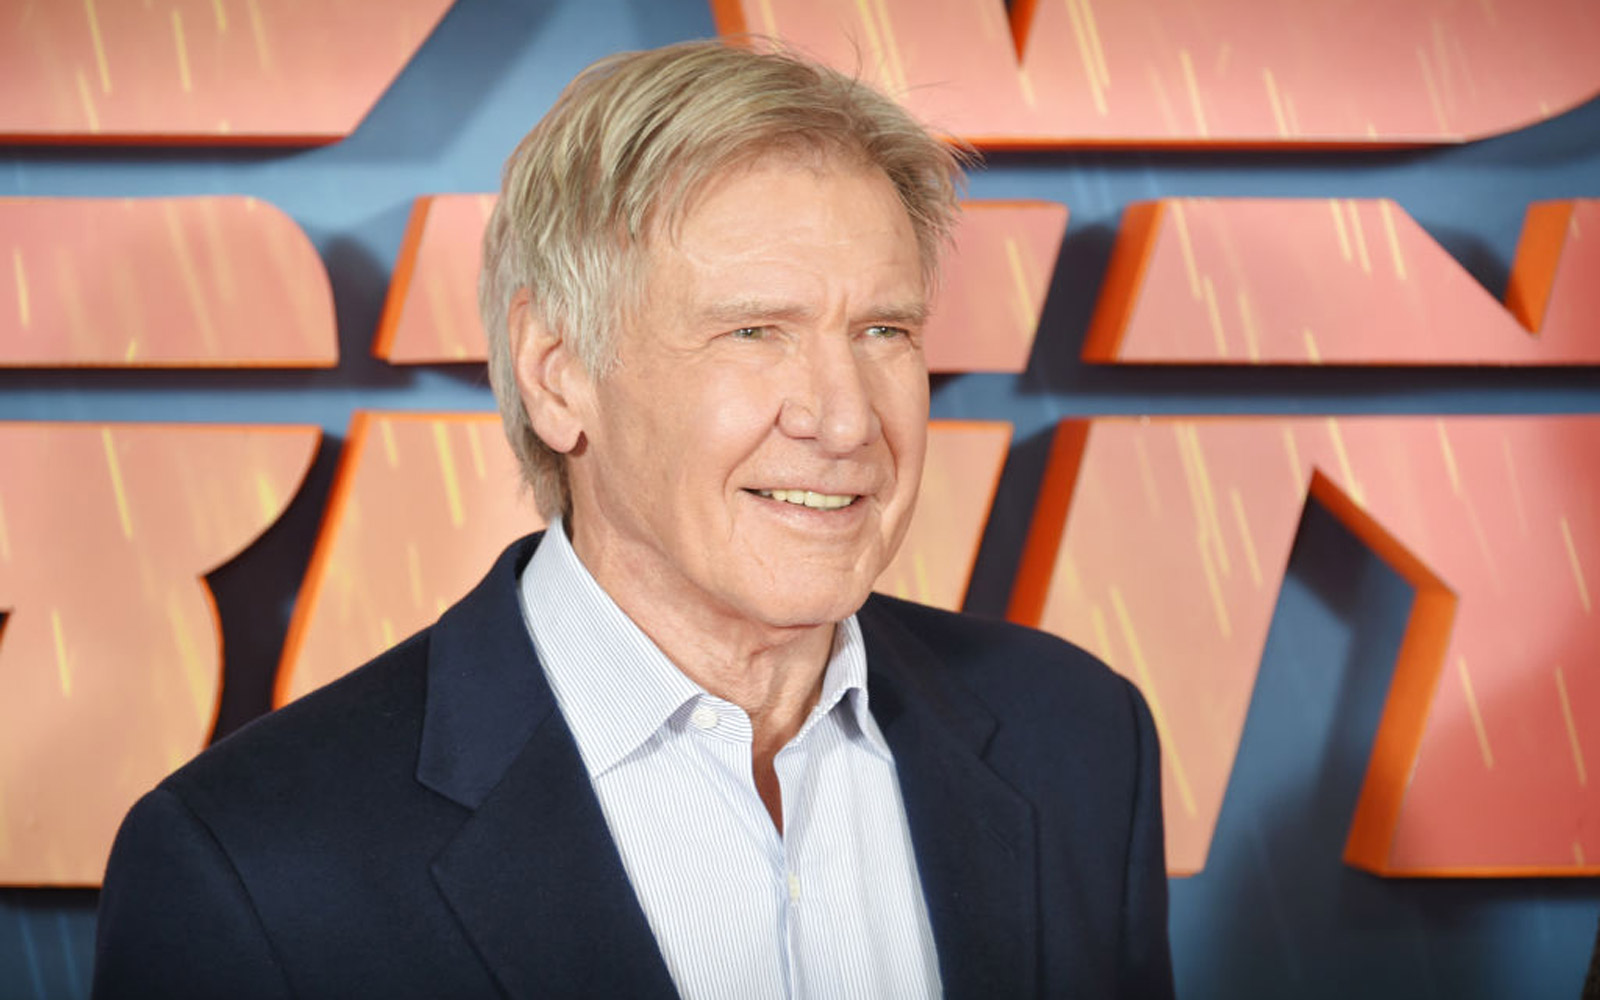 Harrison Ford Helped Rescue a Woman From a Car Crash